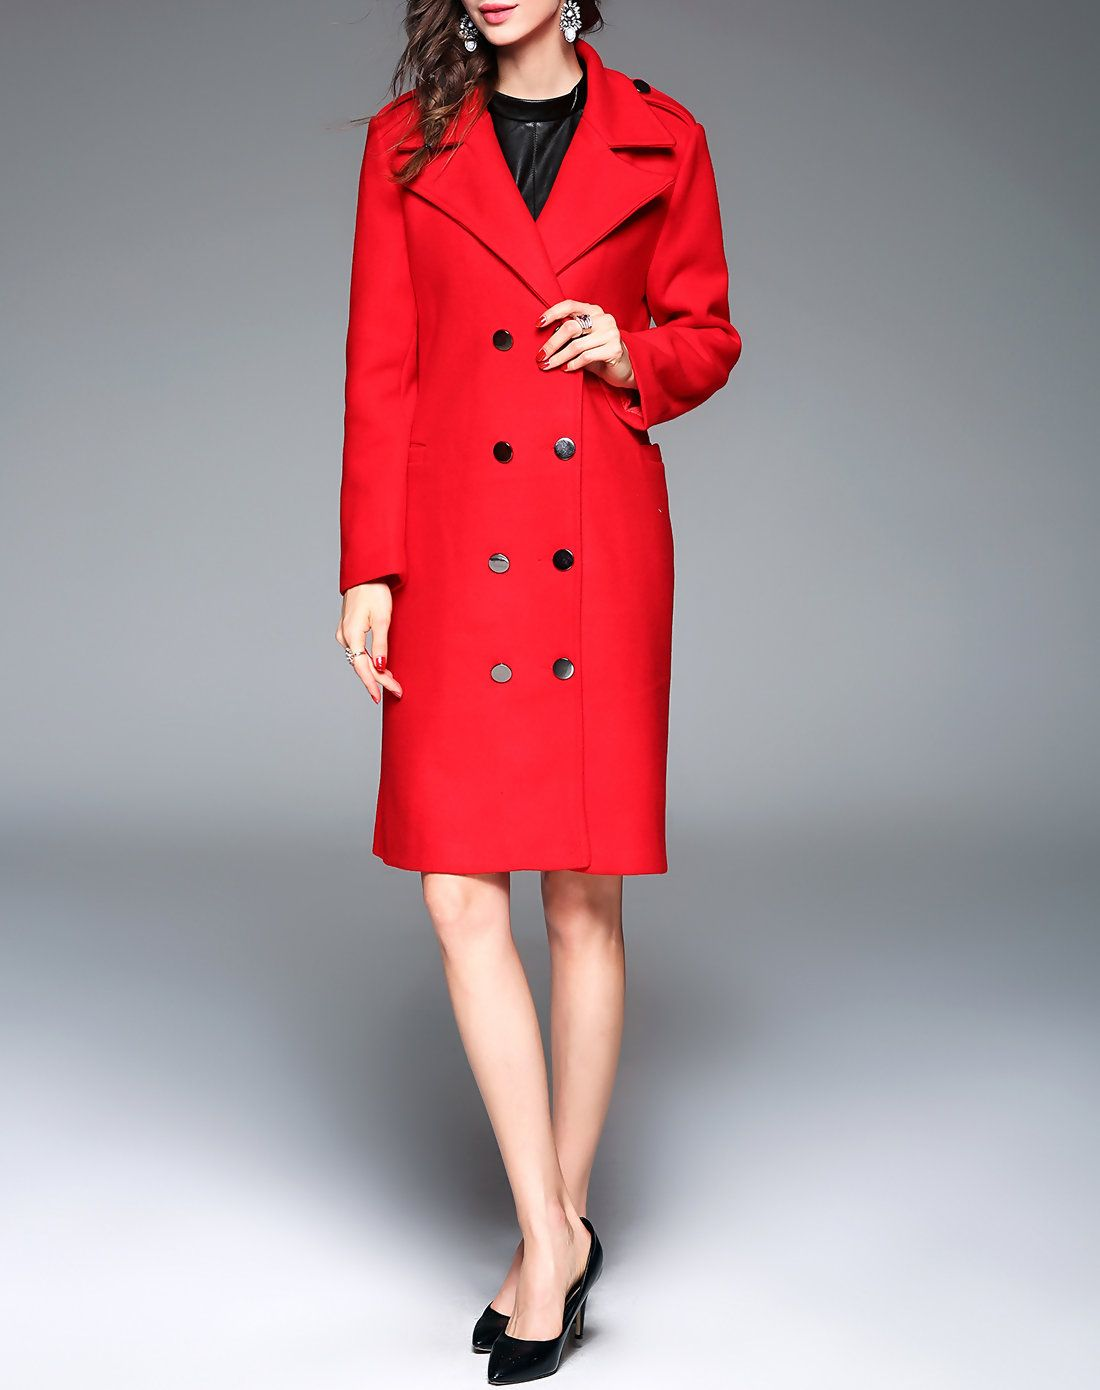 Adorewe vipme coats lanjian red notched lapel double breasted